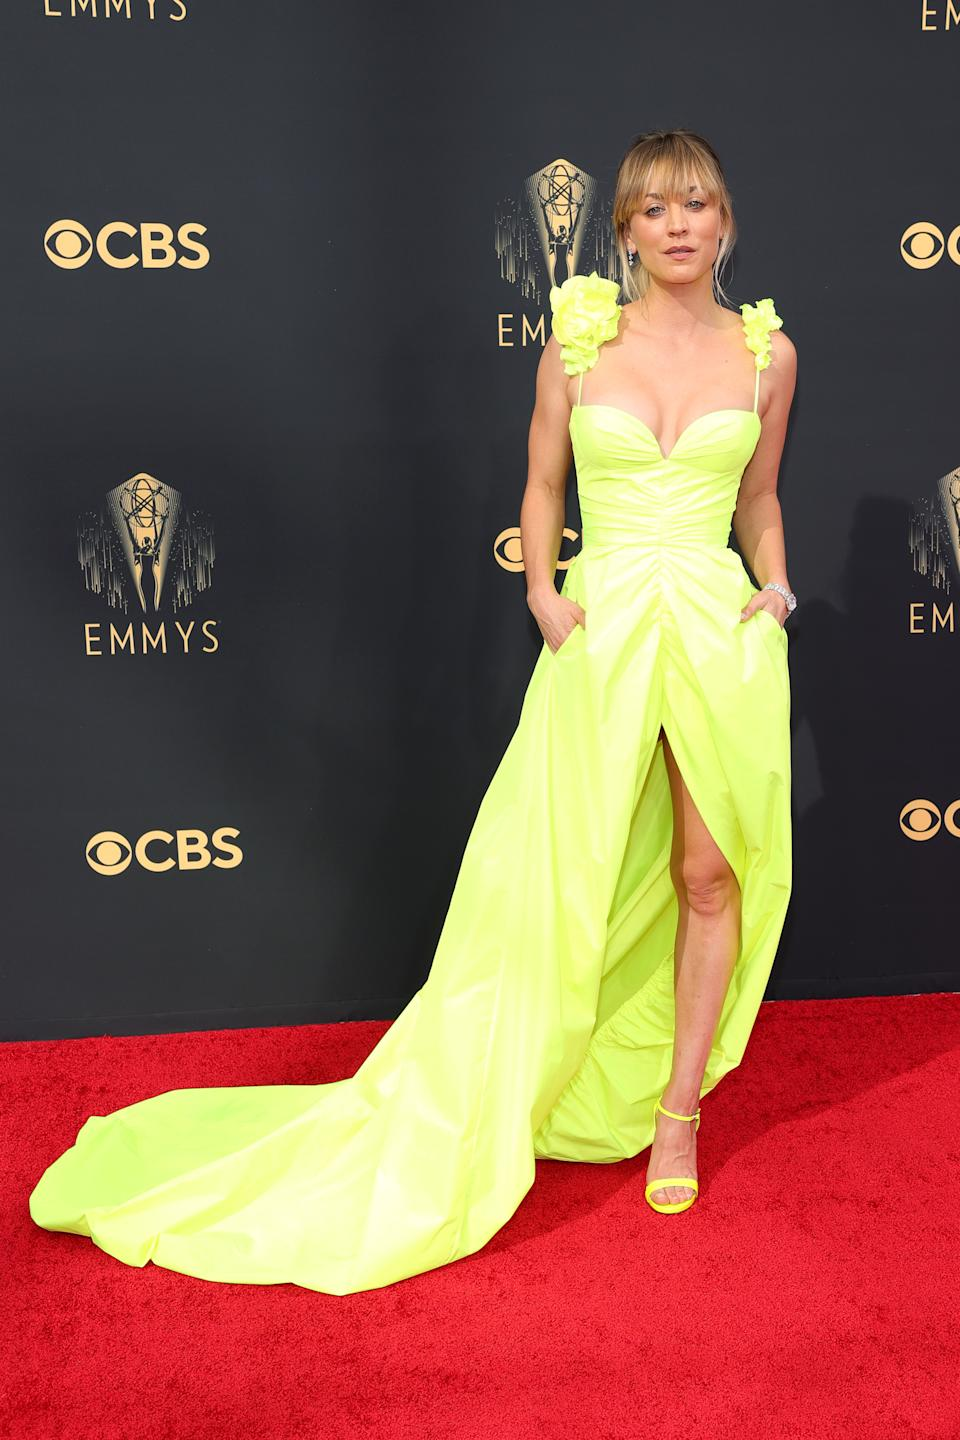 Kaley Cuoco wears a bright yellow gown at the 73rd Primetime Emmy Awards at L.A. LIVE on September 19, 2021 in Los Angeles, California